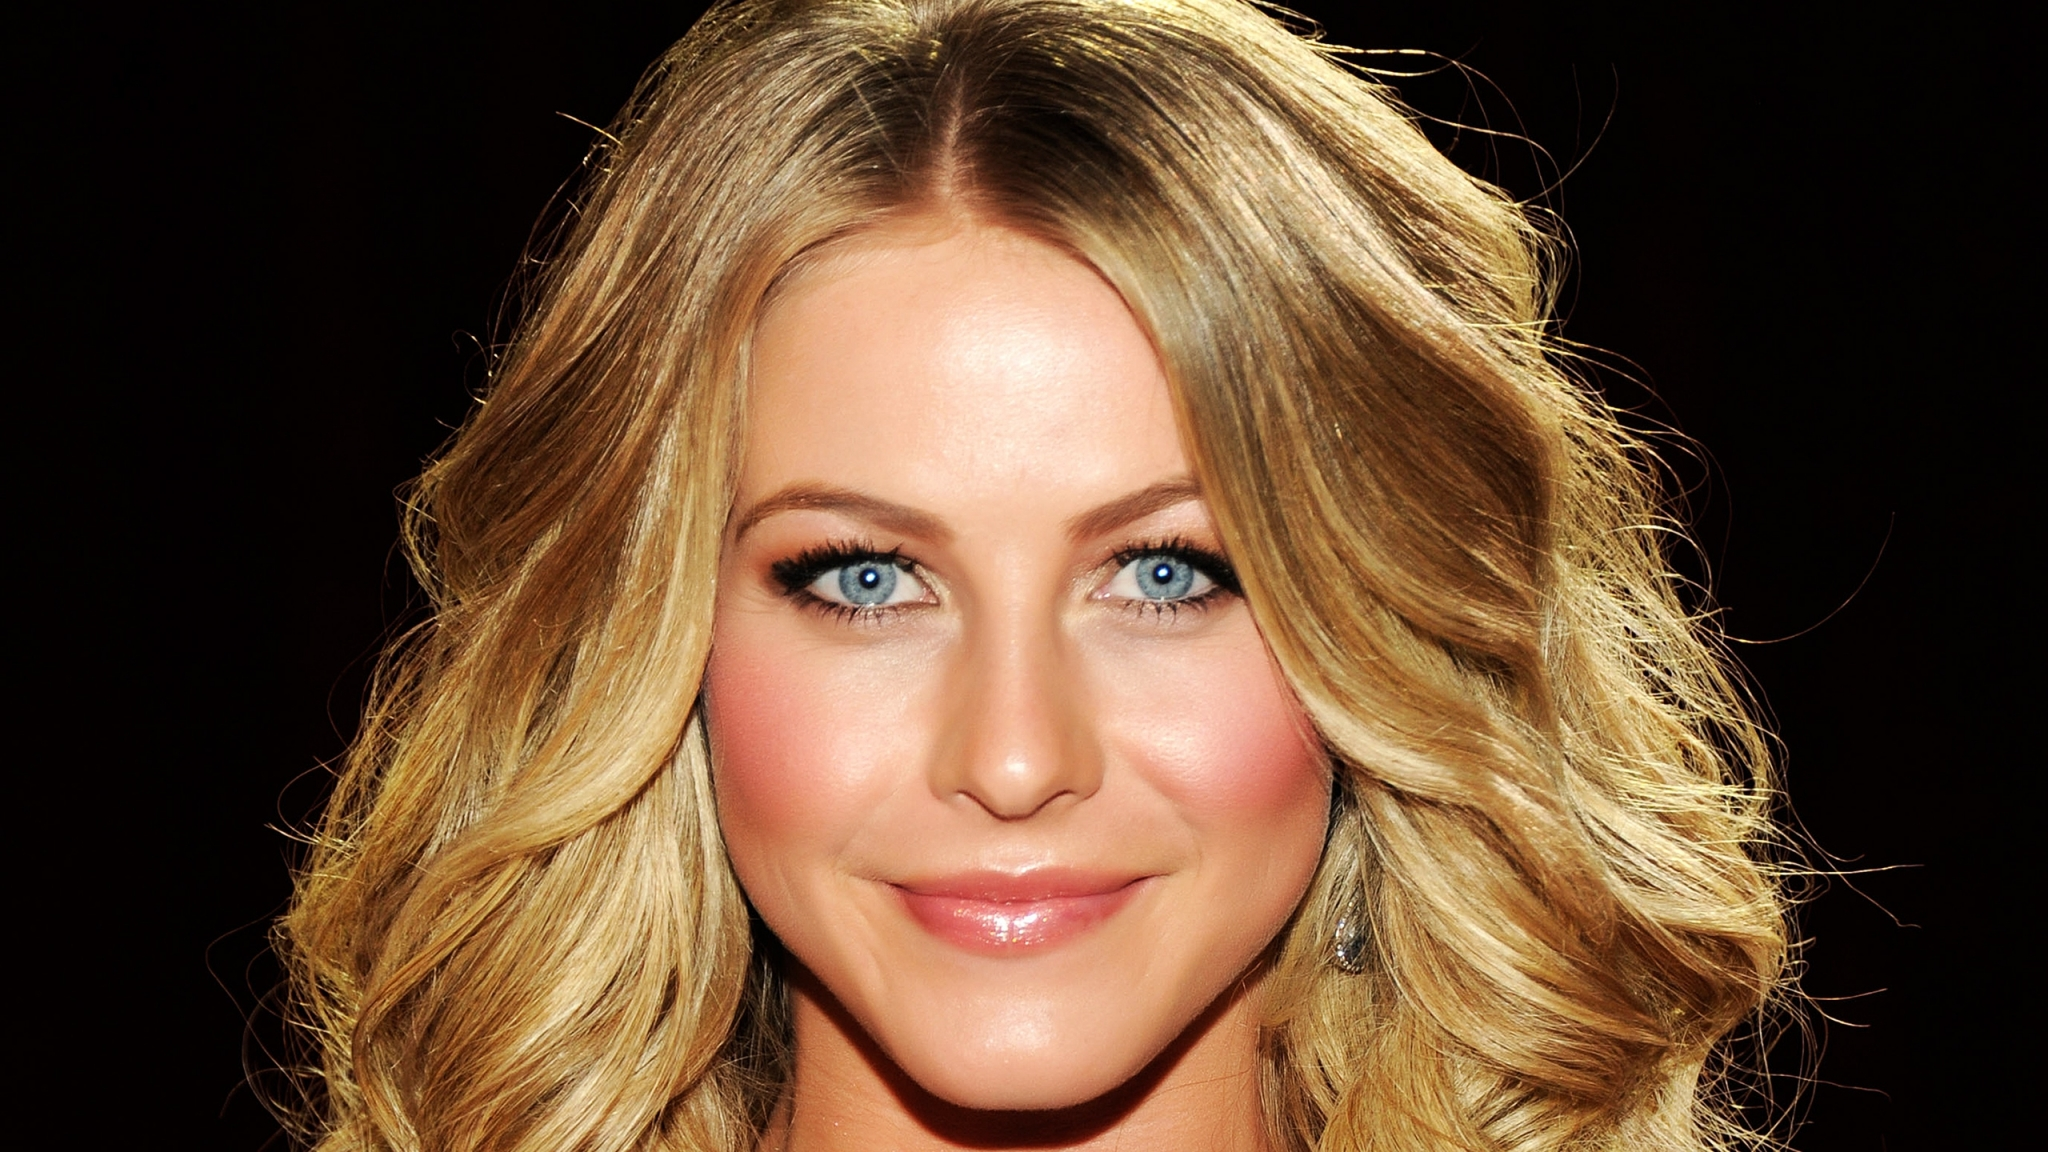 julianne hough hd wallpapers high quality